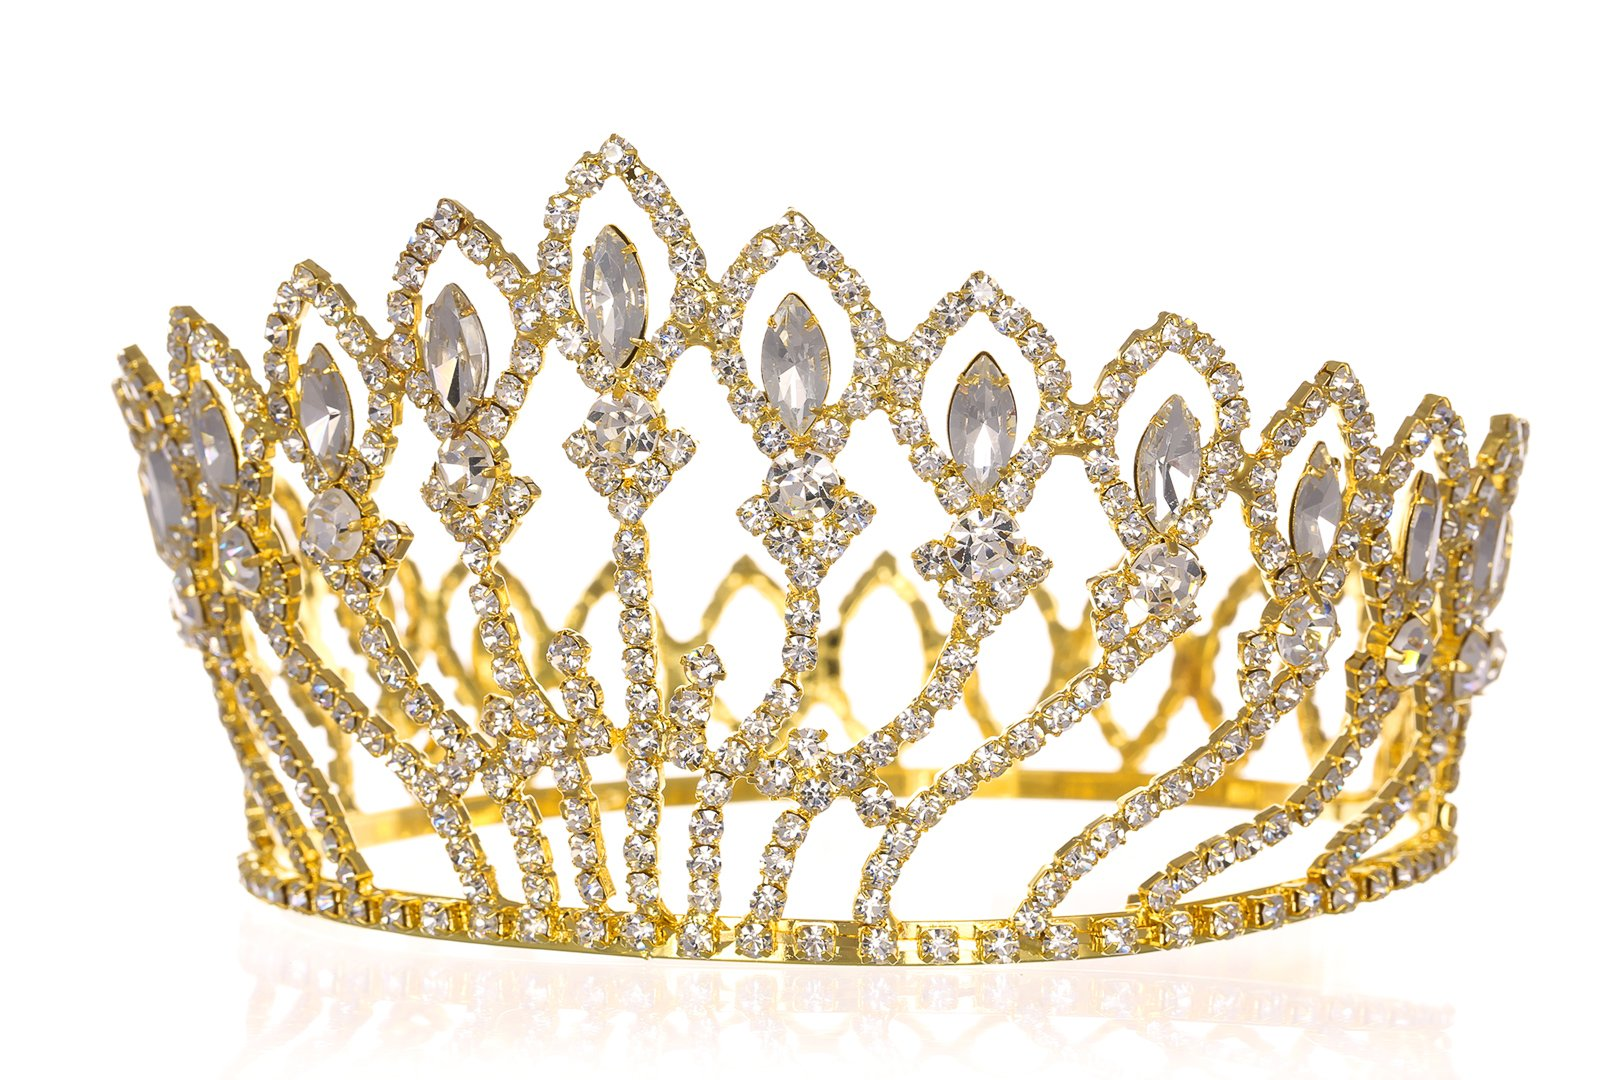 Pageant Beauty Contest Bridal Wedding Full Crown - Gold Plated Clear Crystals T1184 by SAMKY